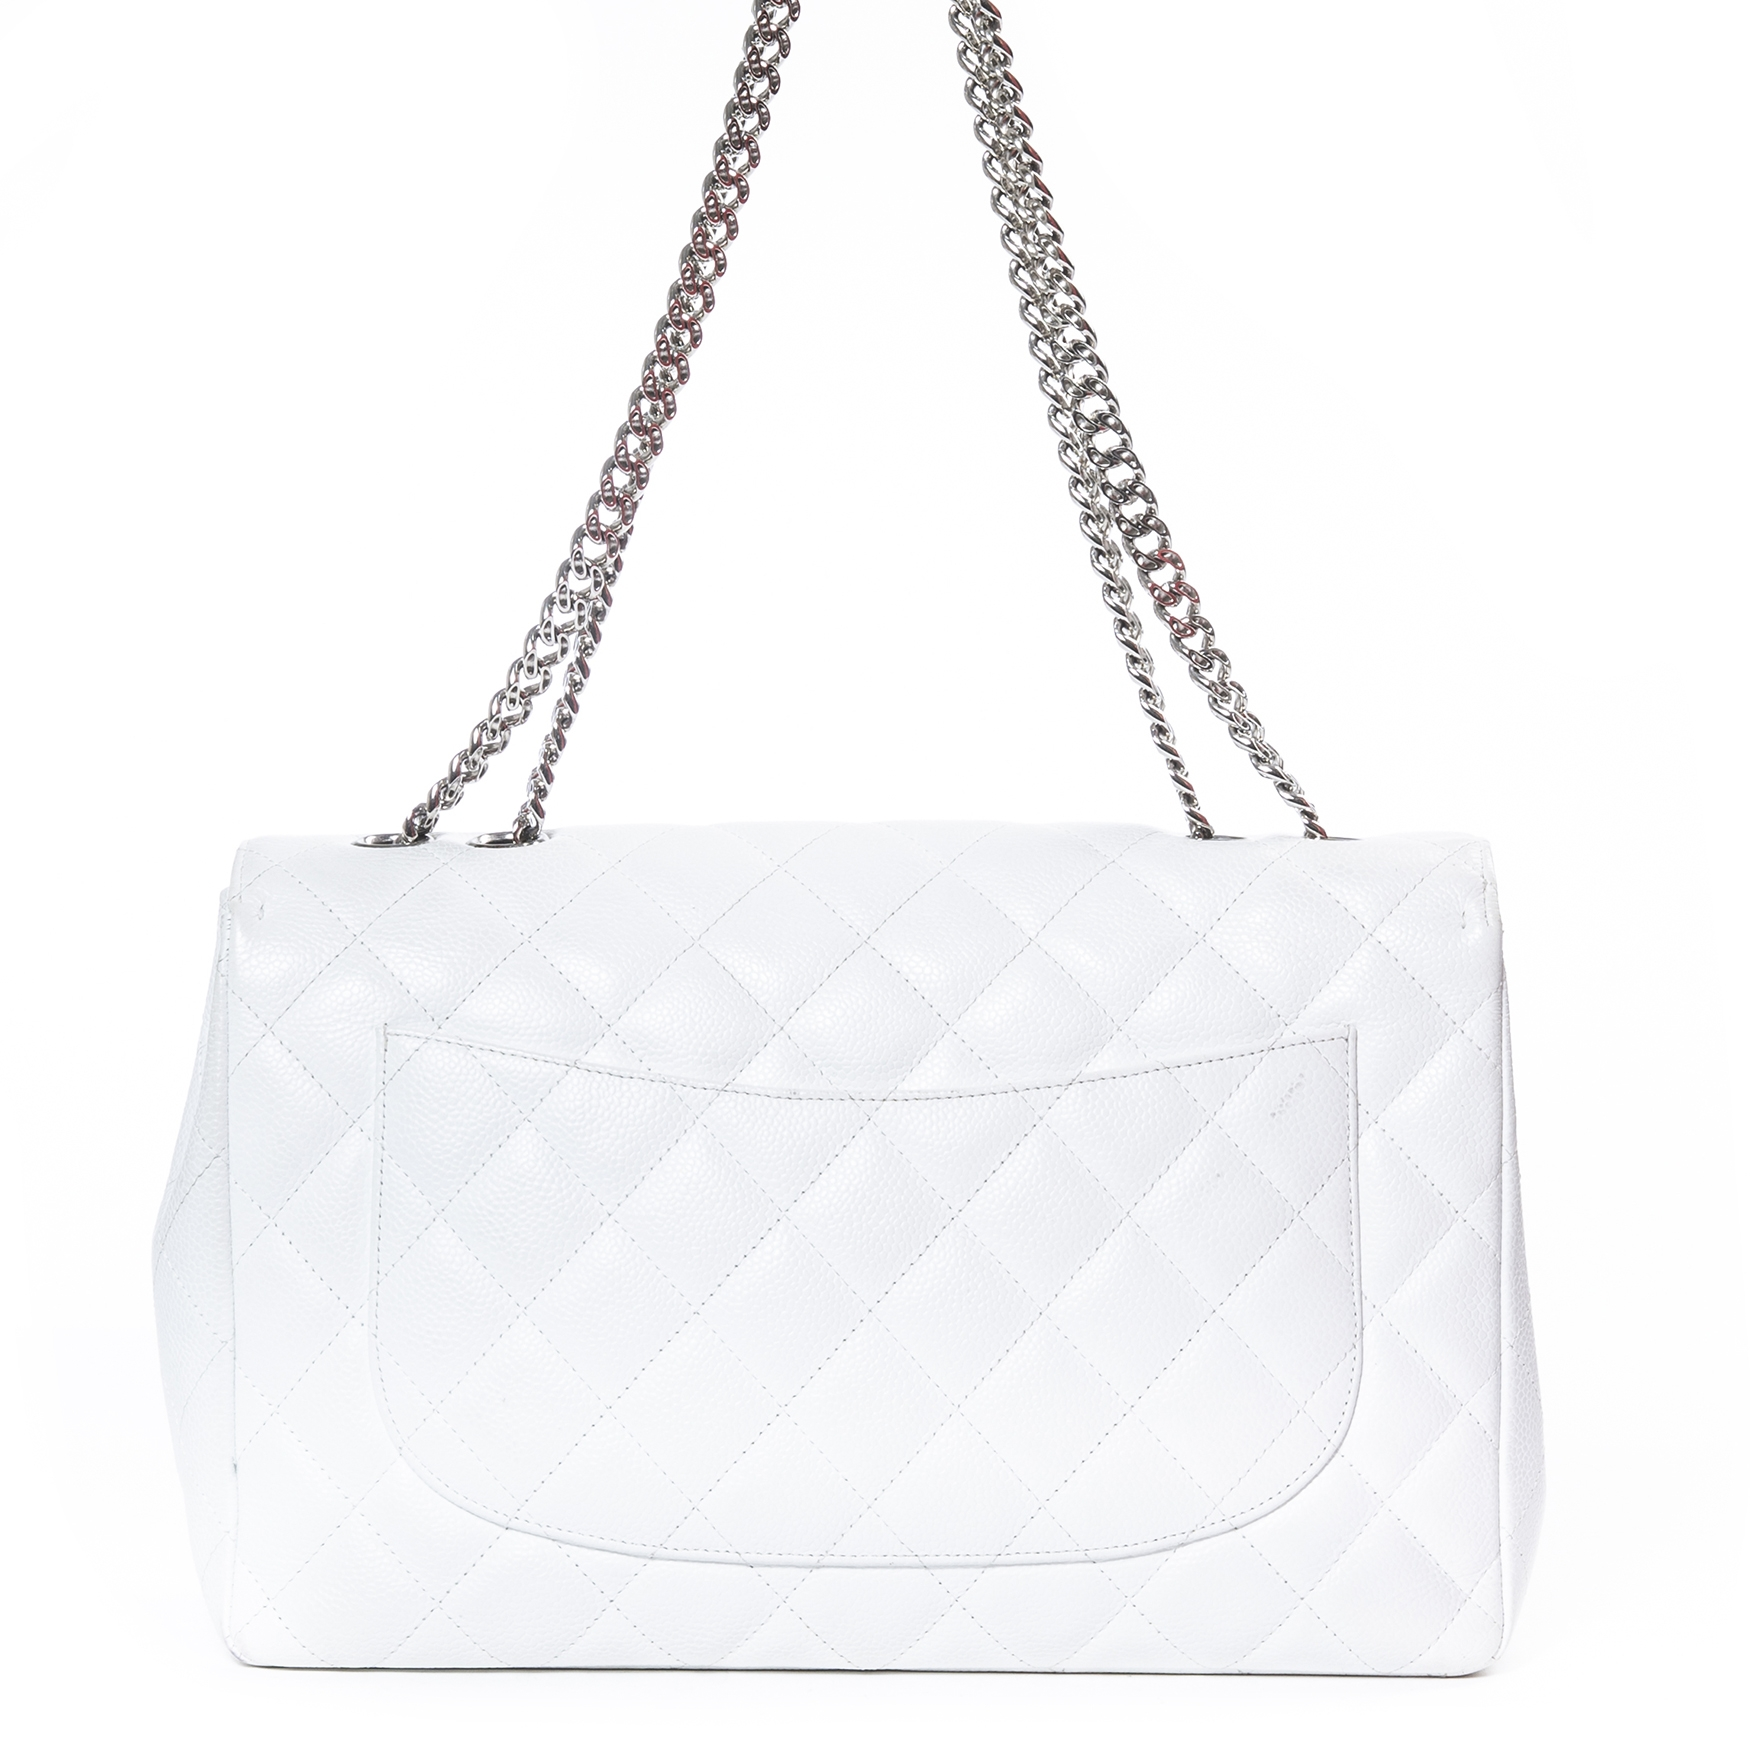 Chanel White Jumbo Caviar Leather Bag